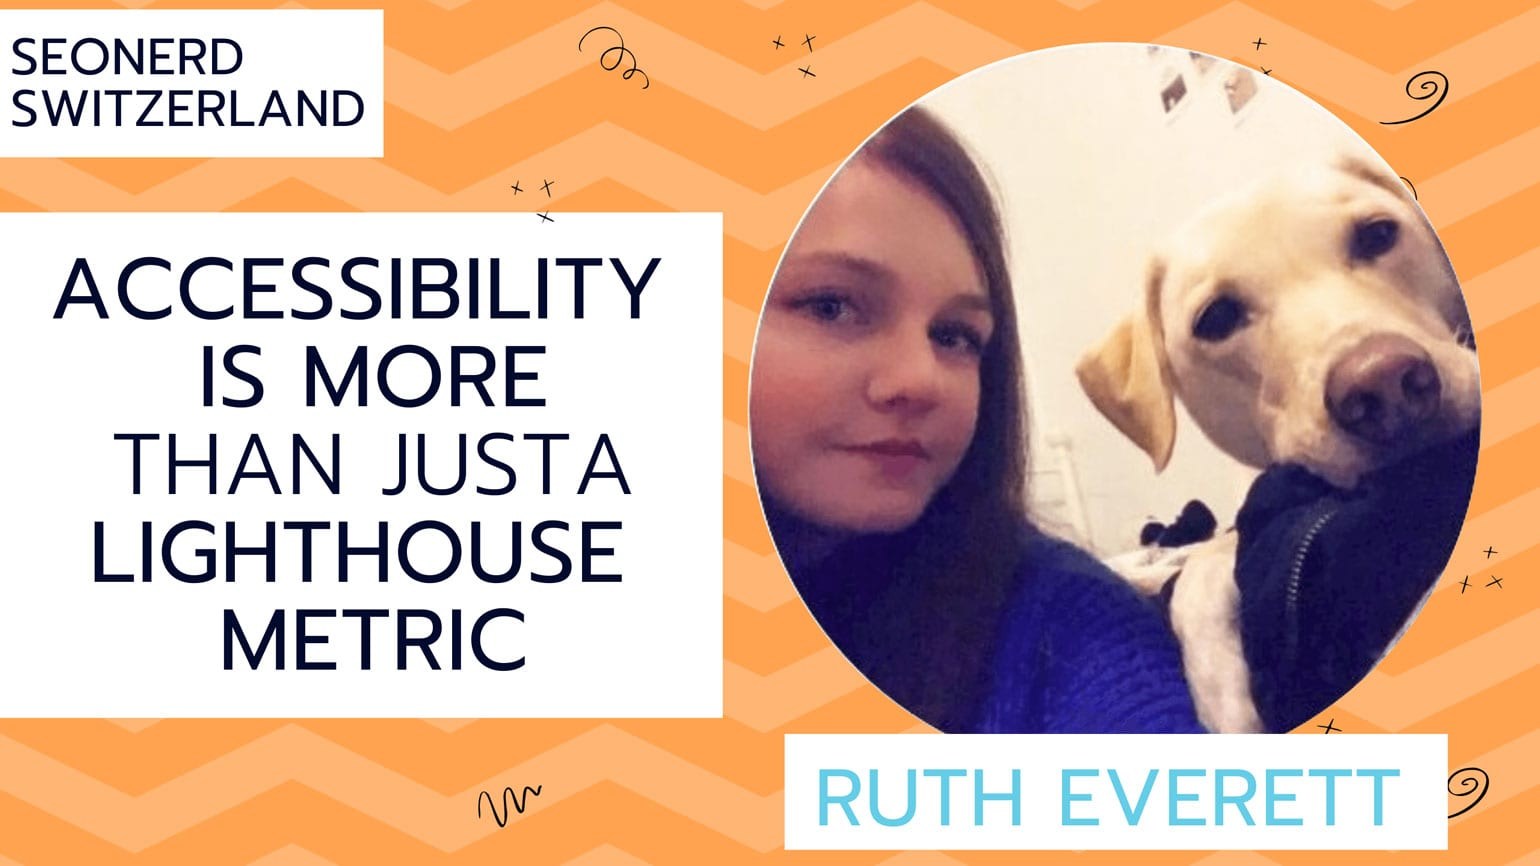 Why Accessibility is More than Just a Lighthouse Metric - Ruth Everett